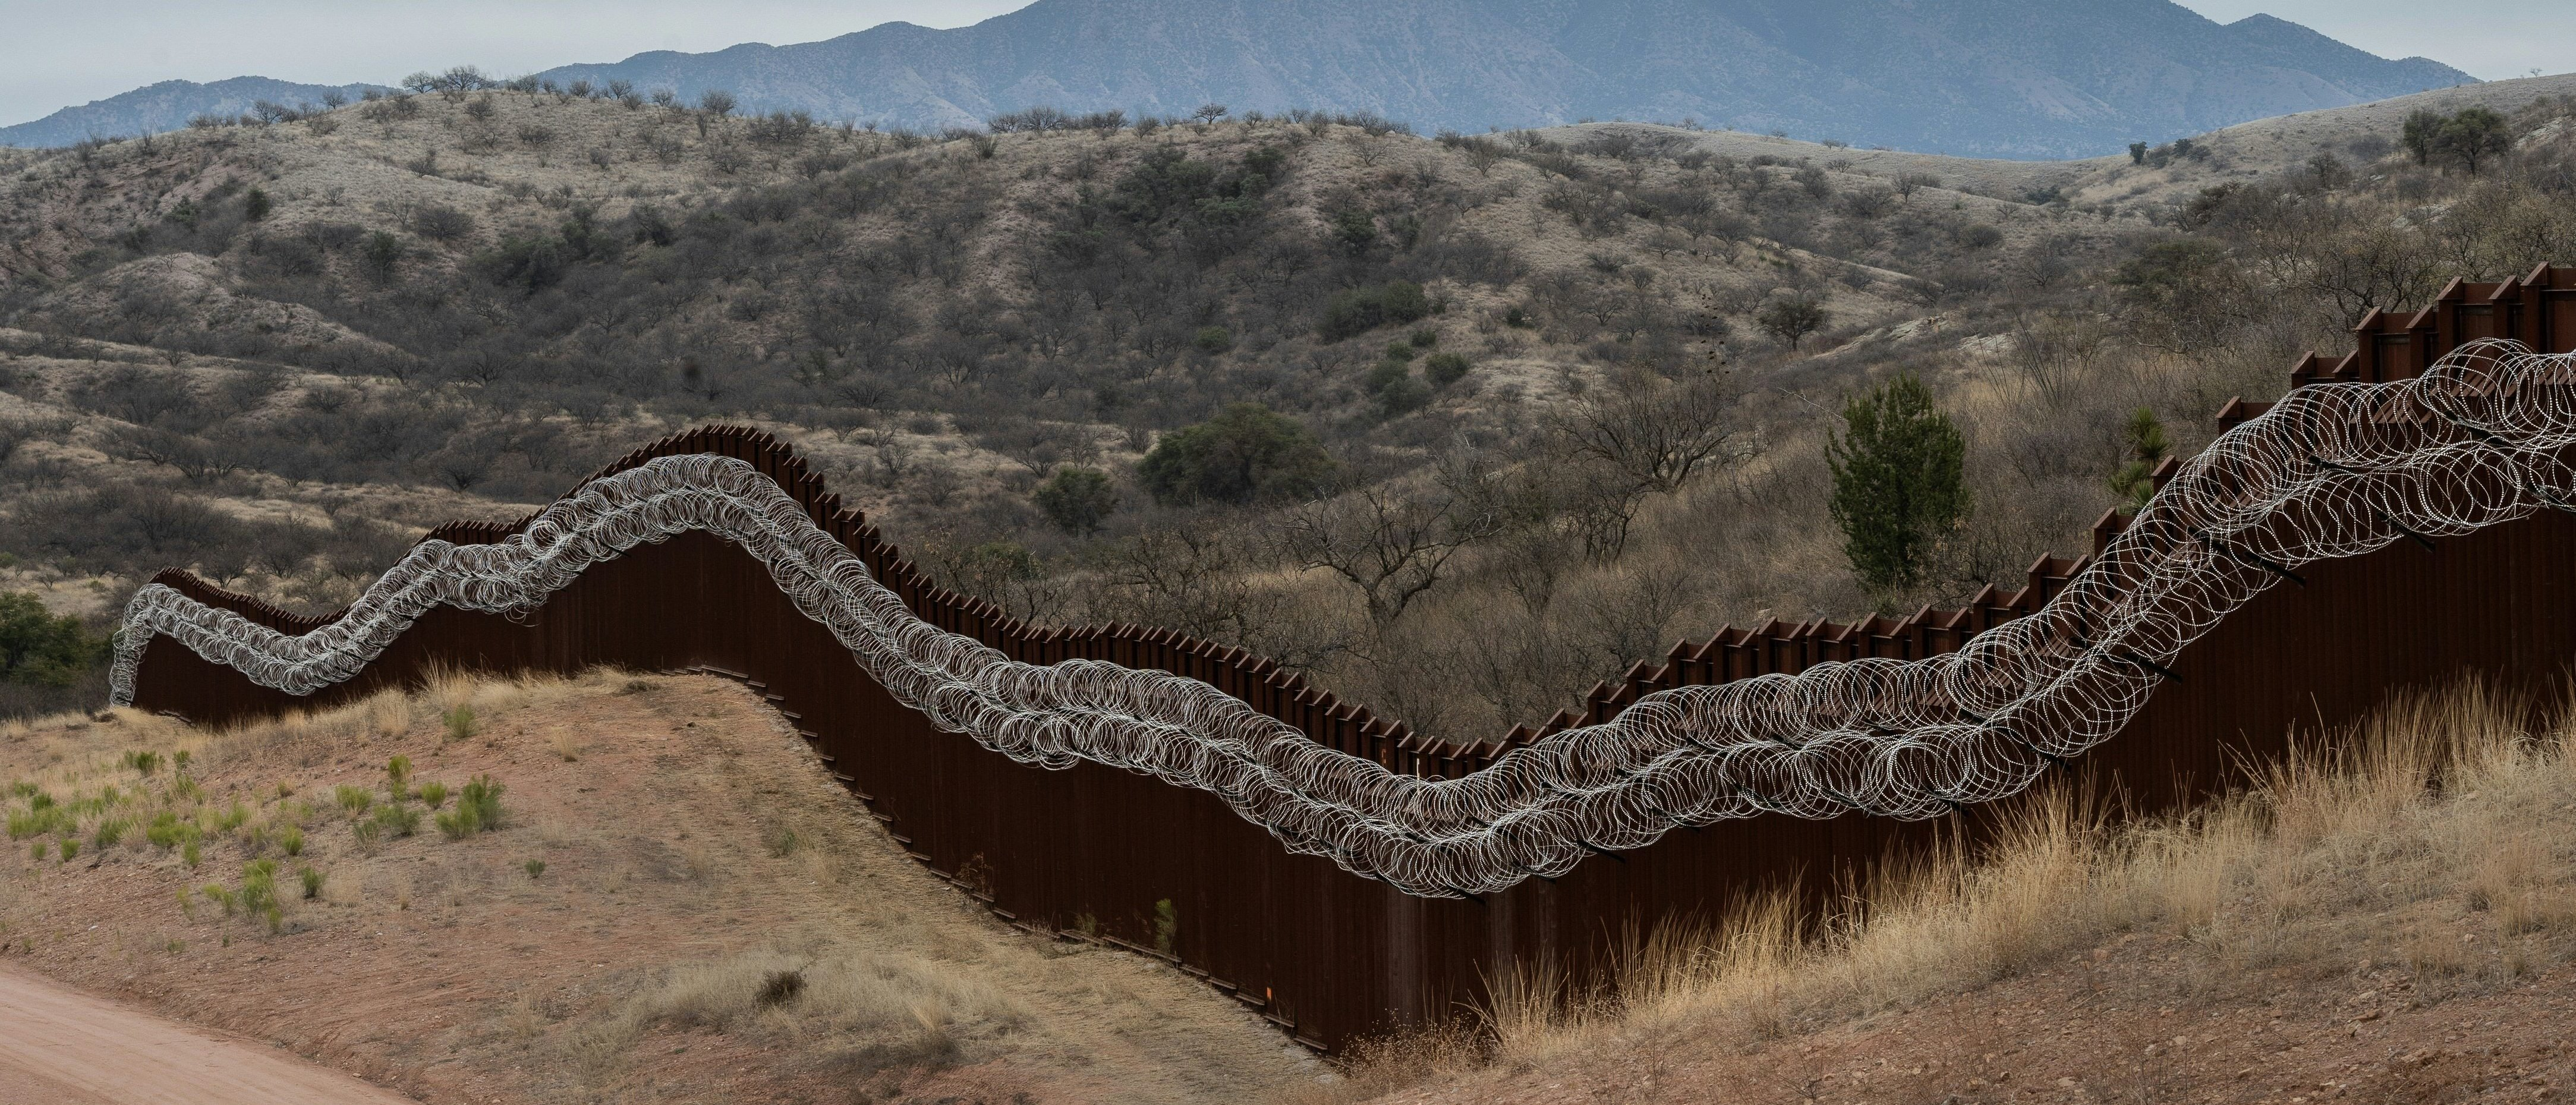 A general view of the US border fence, covered in concertina wire, separating the US and Mexico, at the outskirts of Nogales, Arizona, on February 9, 2019. (ARIANA DREHSLER/AFP/Getty Images)